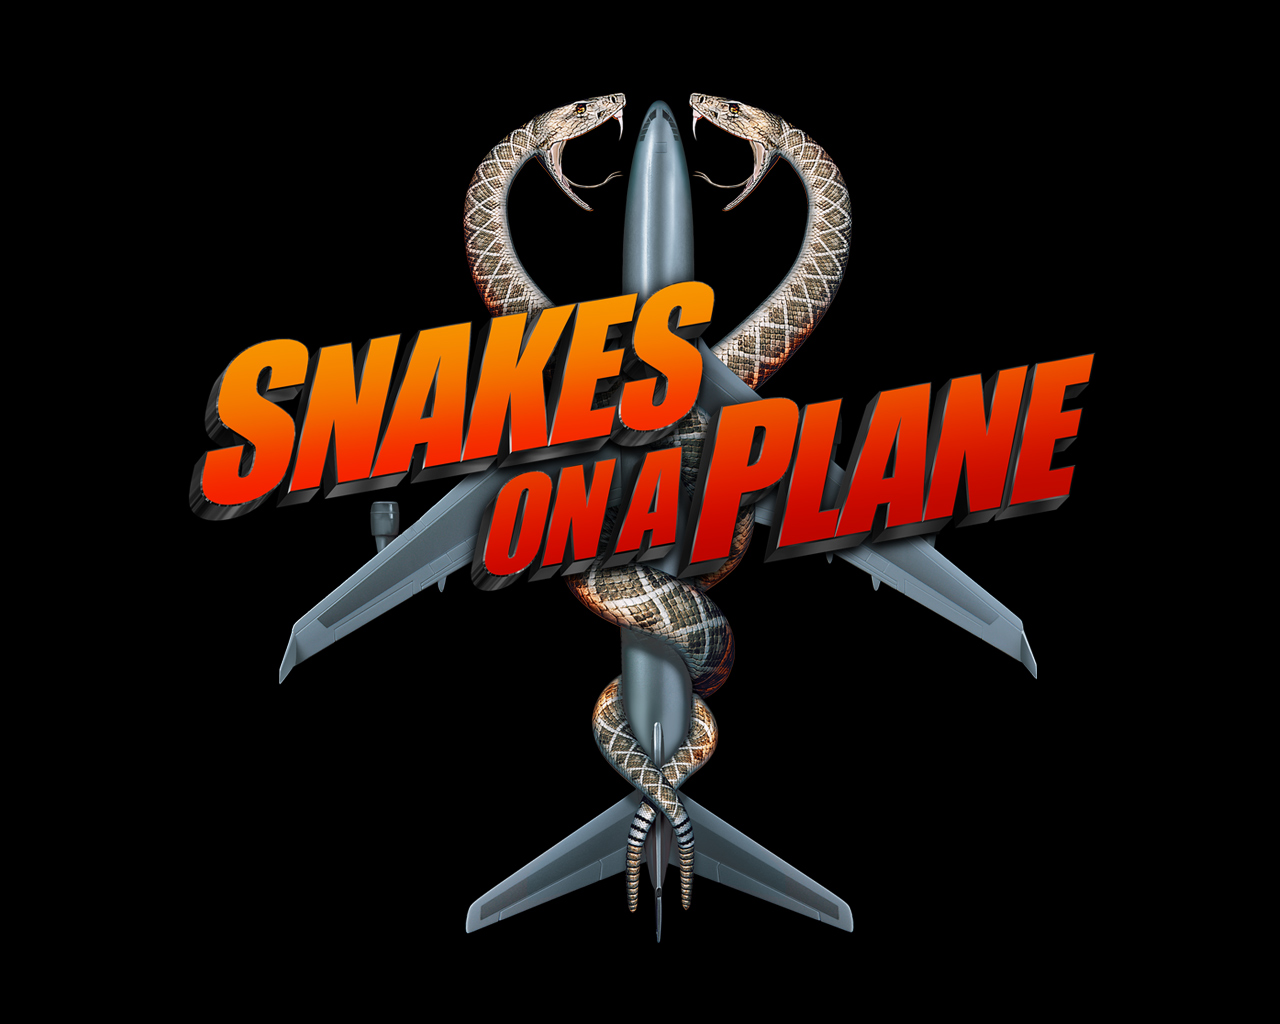 Snakes on a plane - this time for real in Glasgow